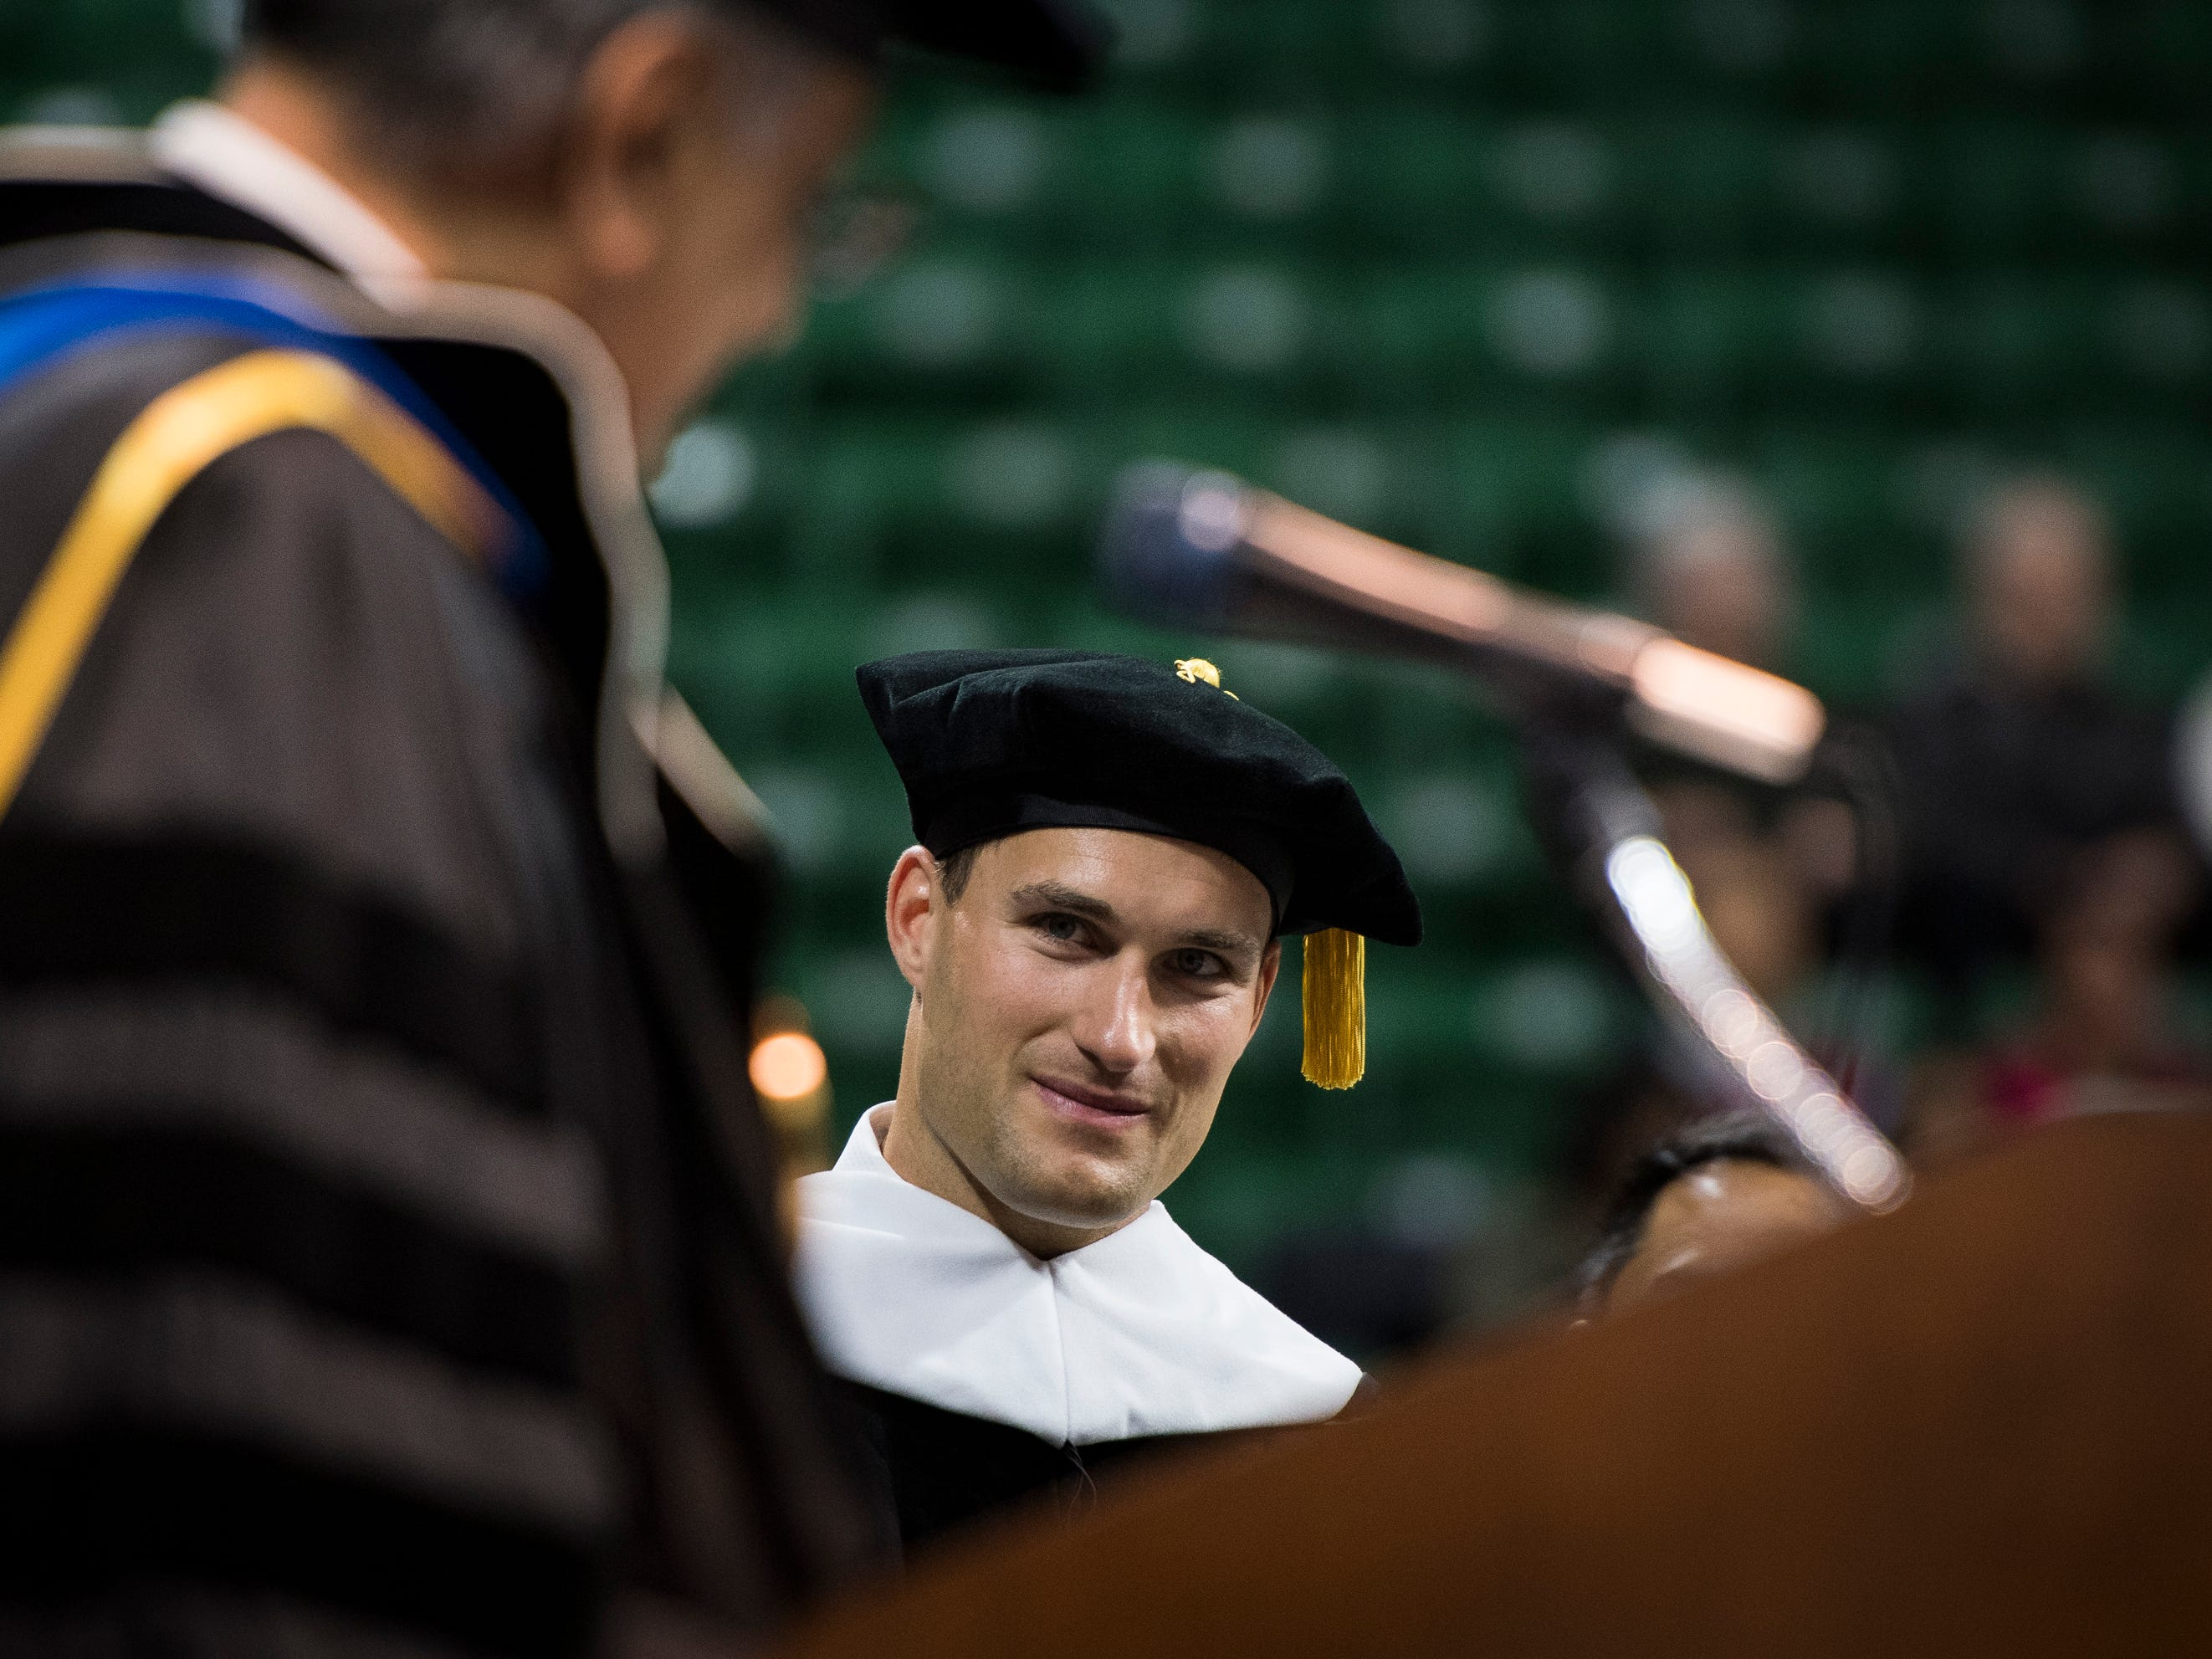 """""""Only a select few reach the epitome of their sport, but your work ethic, combined with the support of your family and your deep faith helped you reach your goals,"""" Michigan State University acting President Satish Udpa, left, said, introducing former MSU quarterback and NFL player Kirk Cousins, Friday, May 3, 2019, during spring convocation at Breslin Center in East Lansing, Michigan. Cousins was presented an honorary doctorate of humanities."""